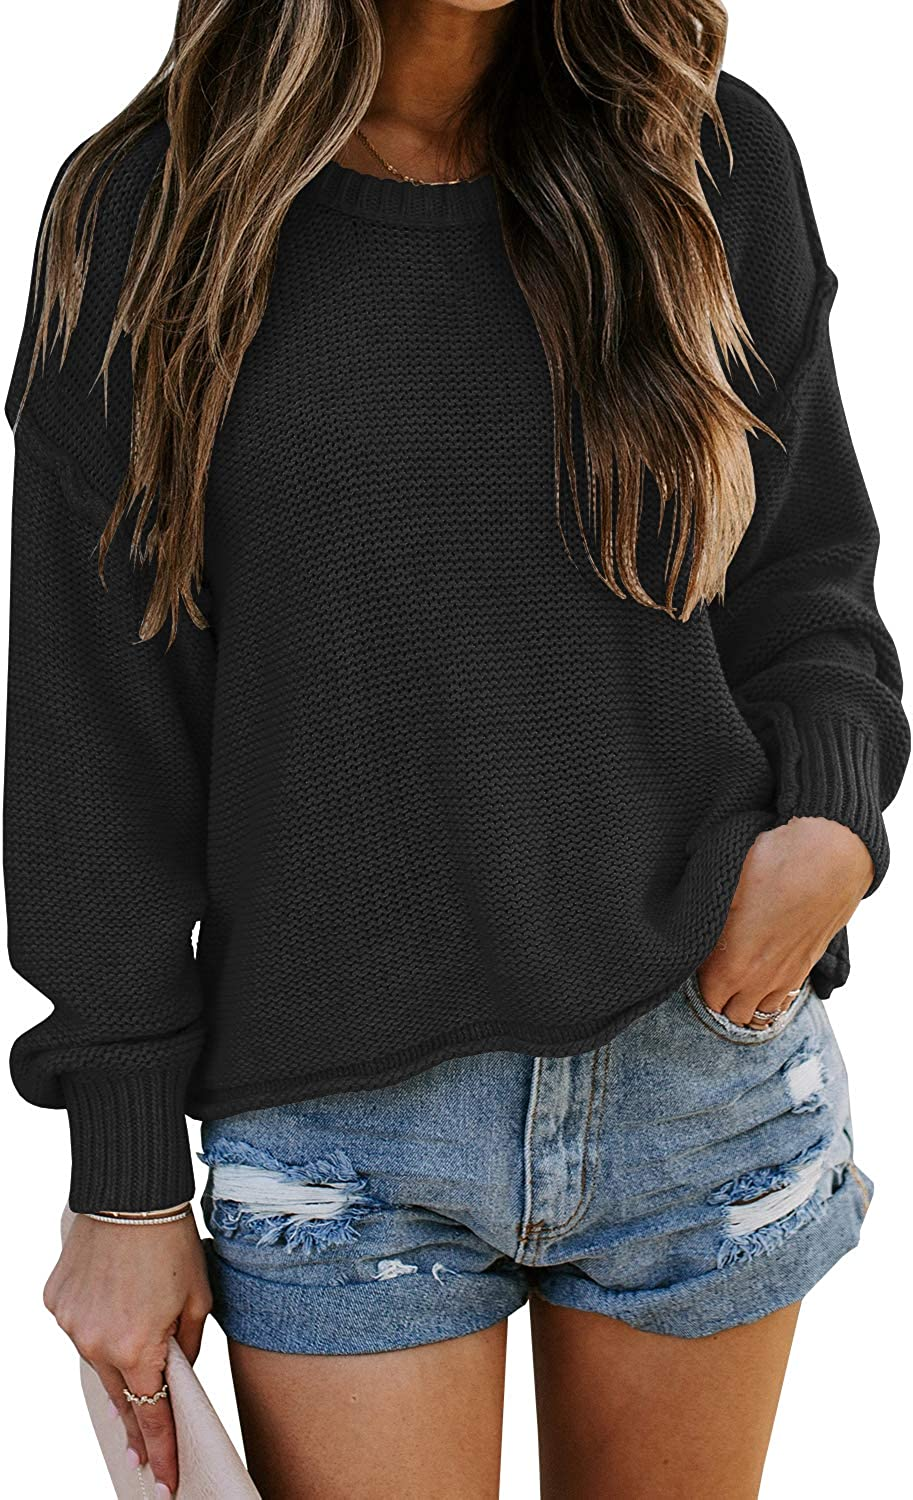 Laseily Women's Long Lantern Sleeve Pullover Sweaters Crew Neck Chunky Cable Knit Fall Jumper Tops